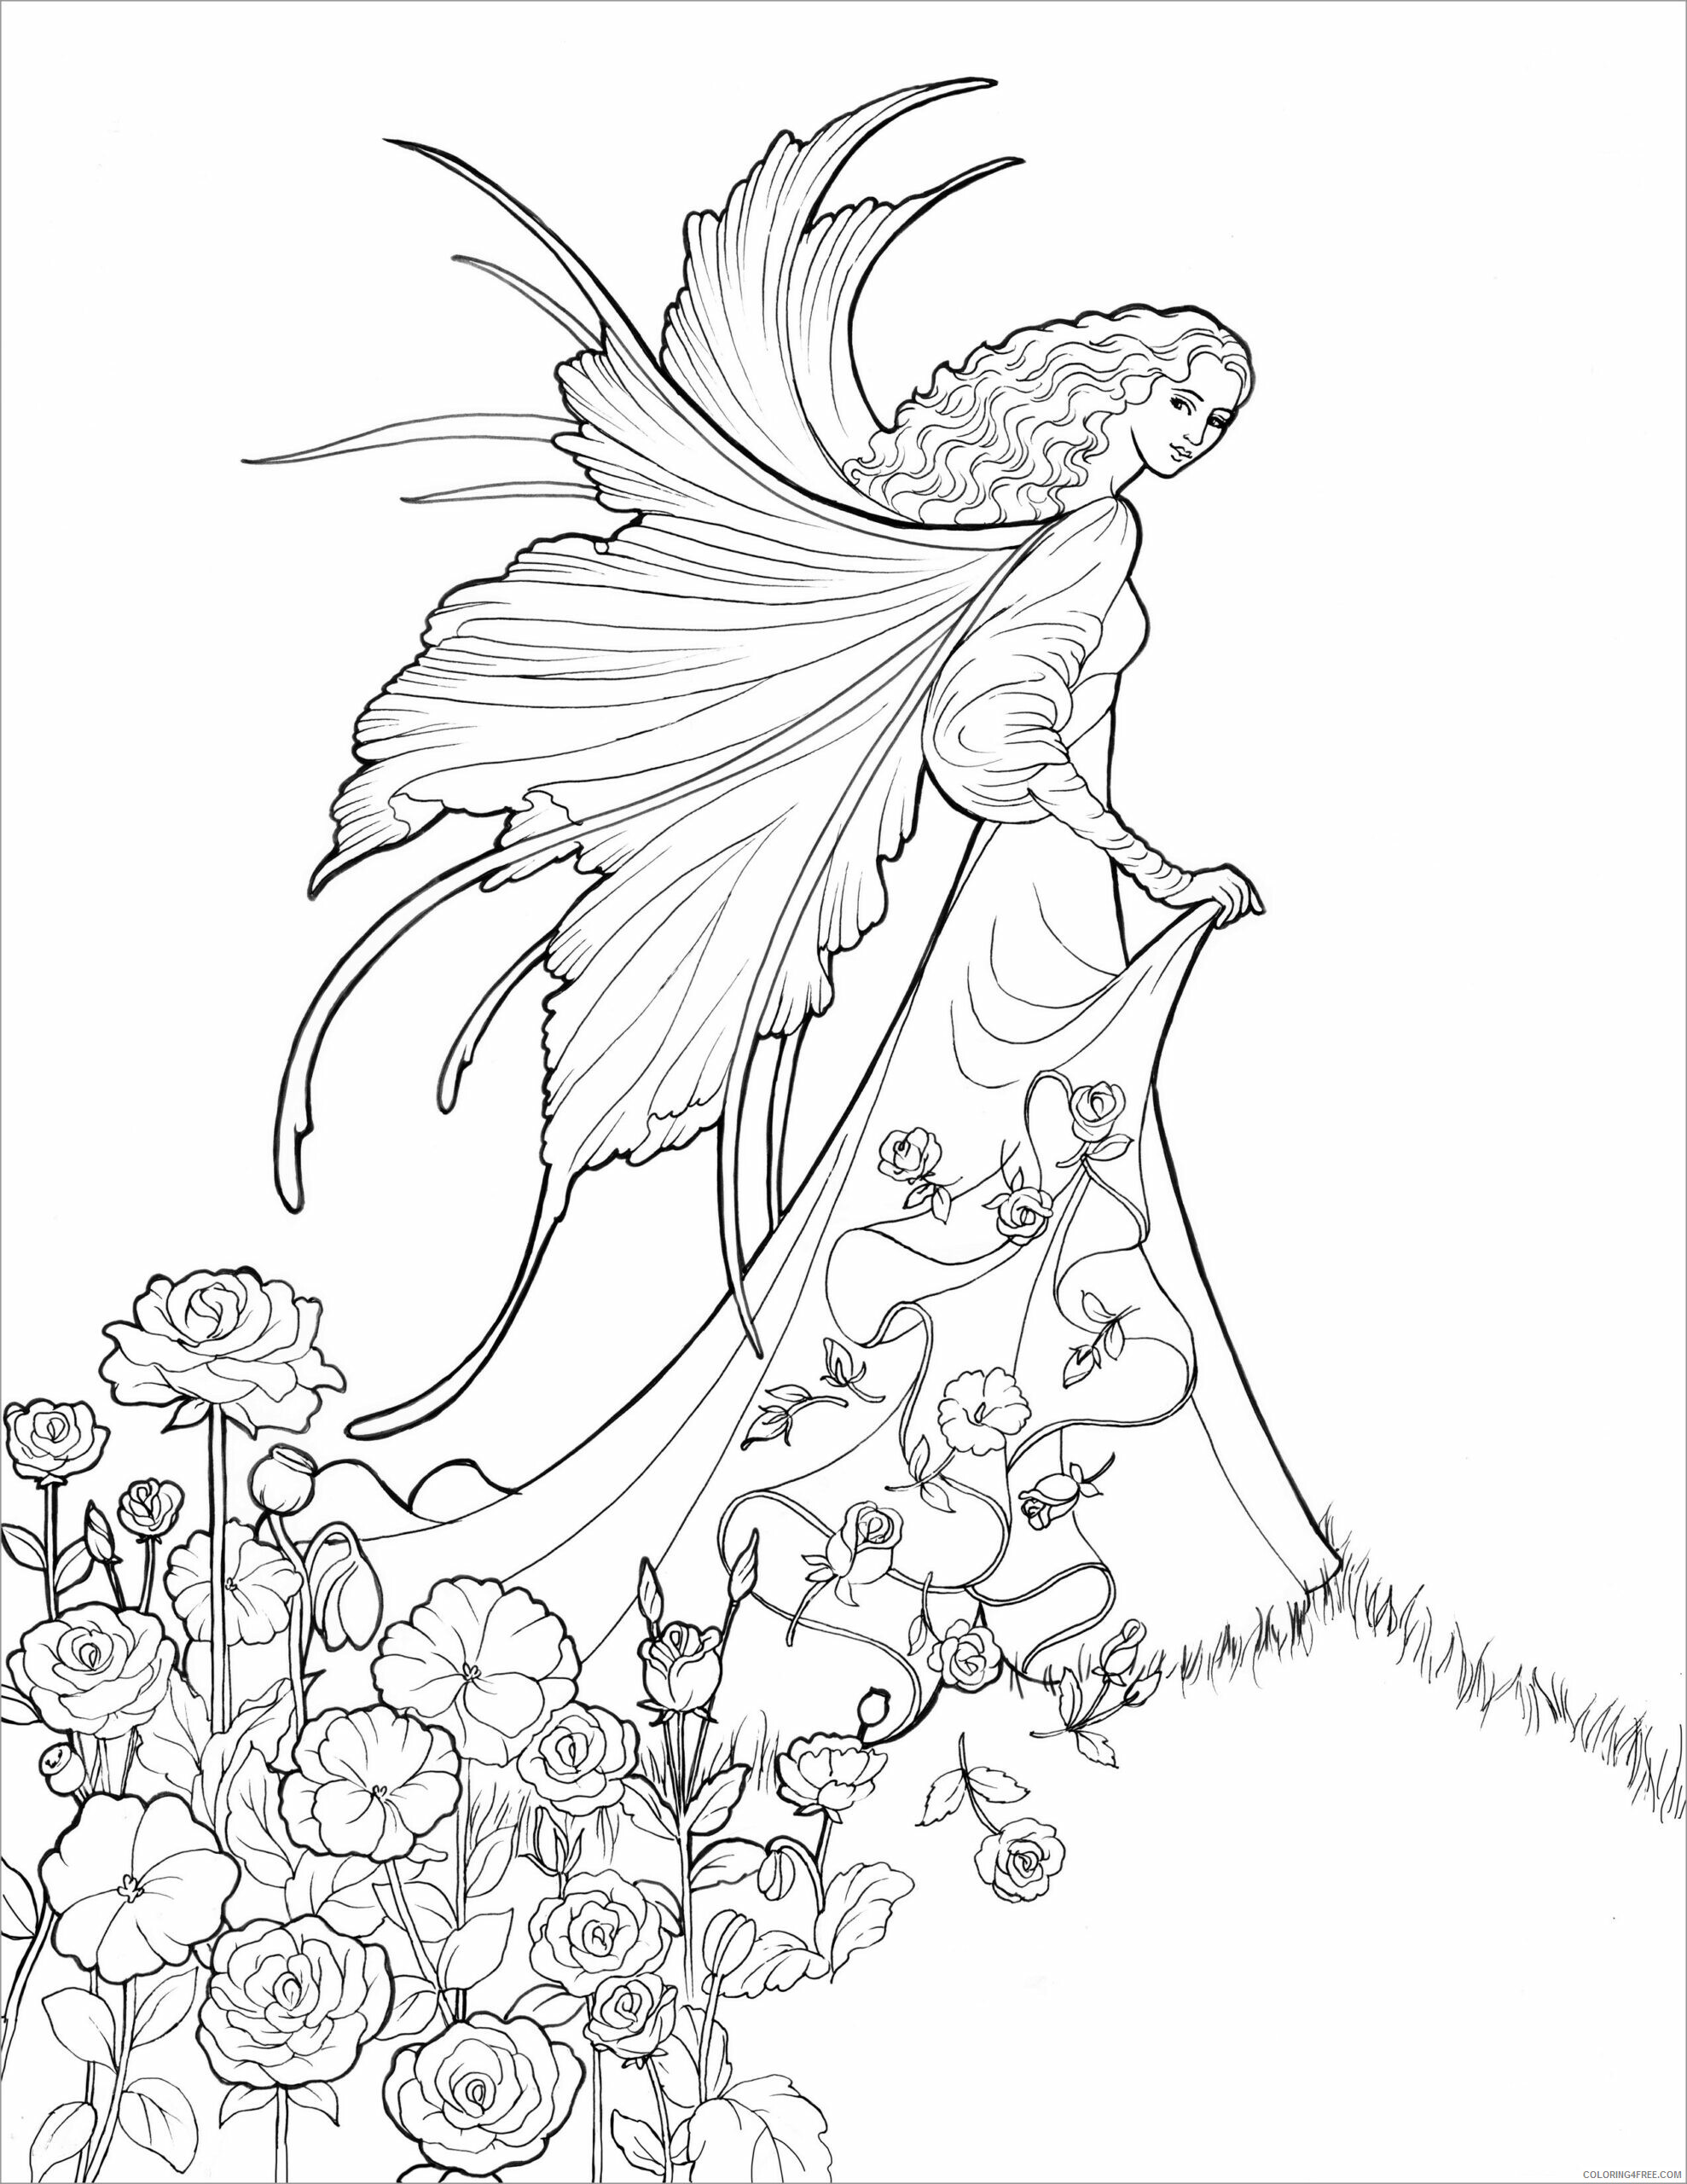 Fairy Coloring Pages fairy for adult Printable 2021 2339 Coloring4free